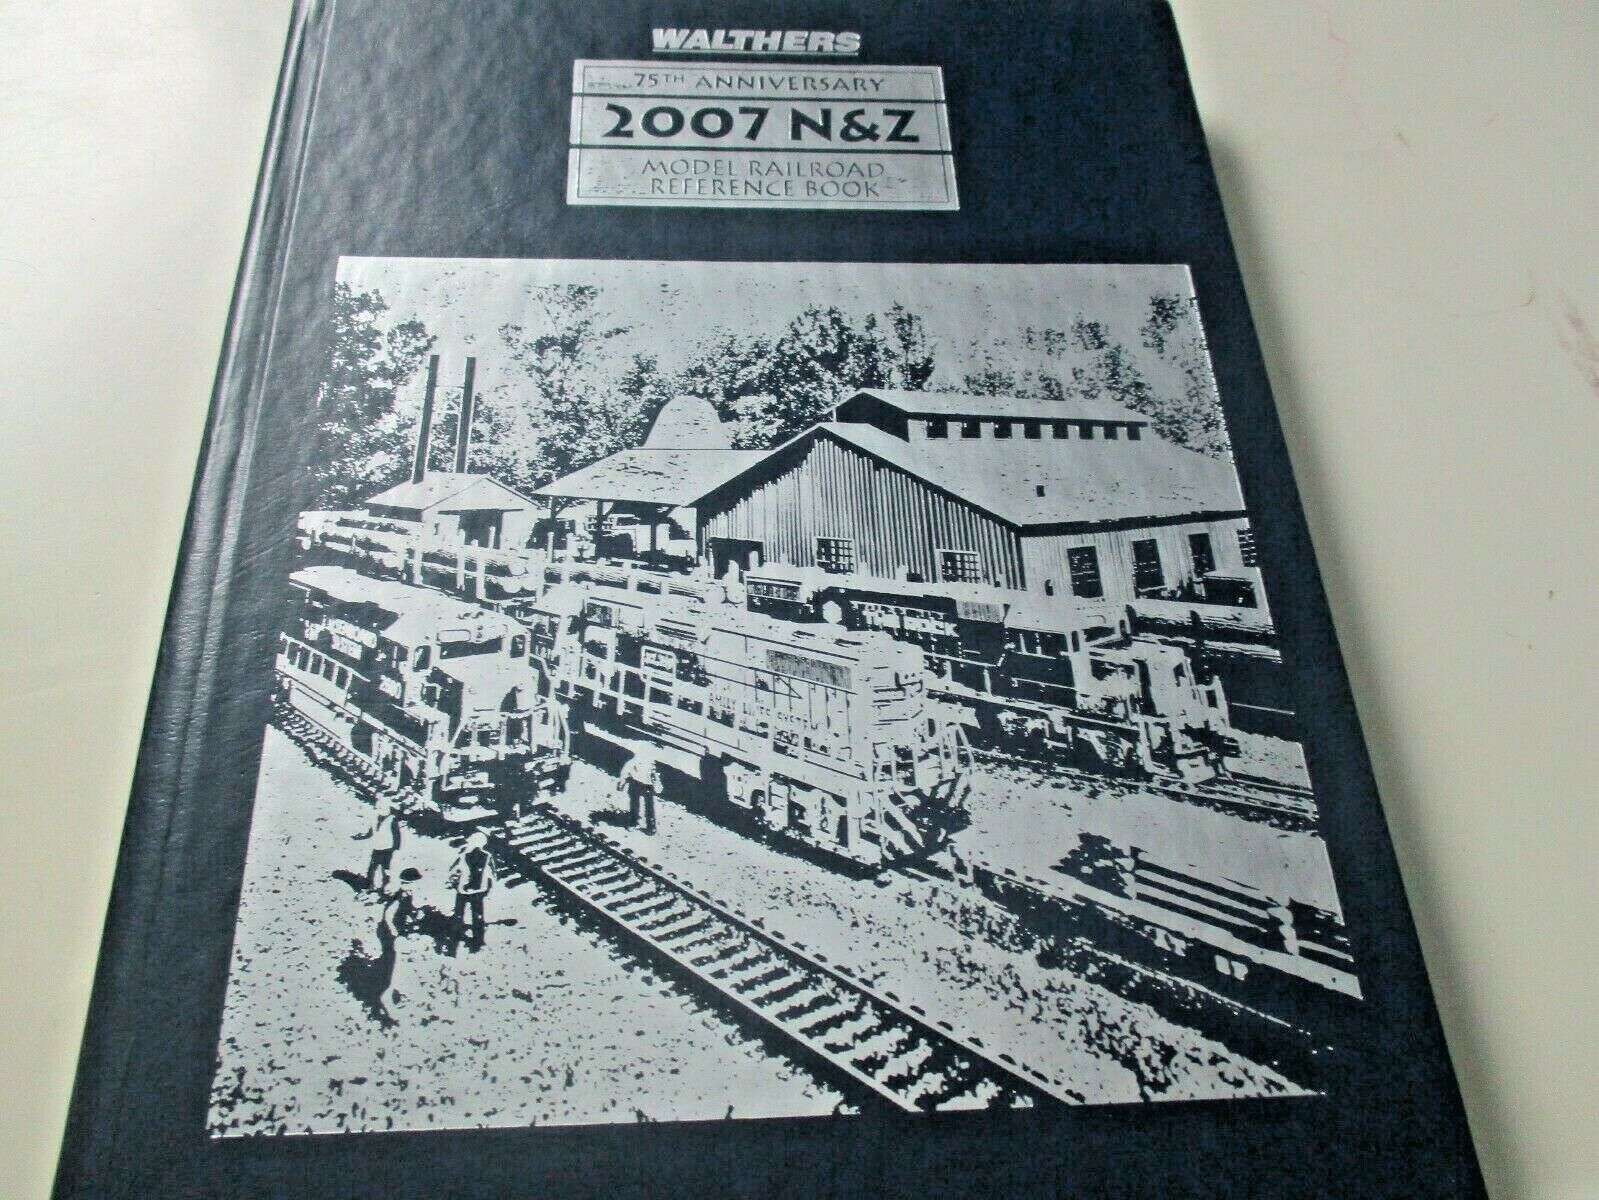 Walthers # 913-2470 2007 75th Anniversary Hard Cover # 76 of 537 Catalog N & Z